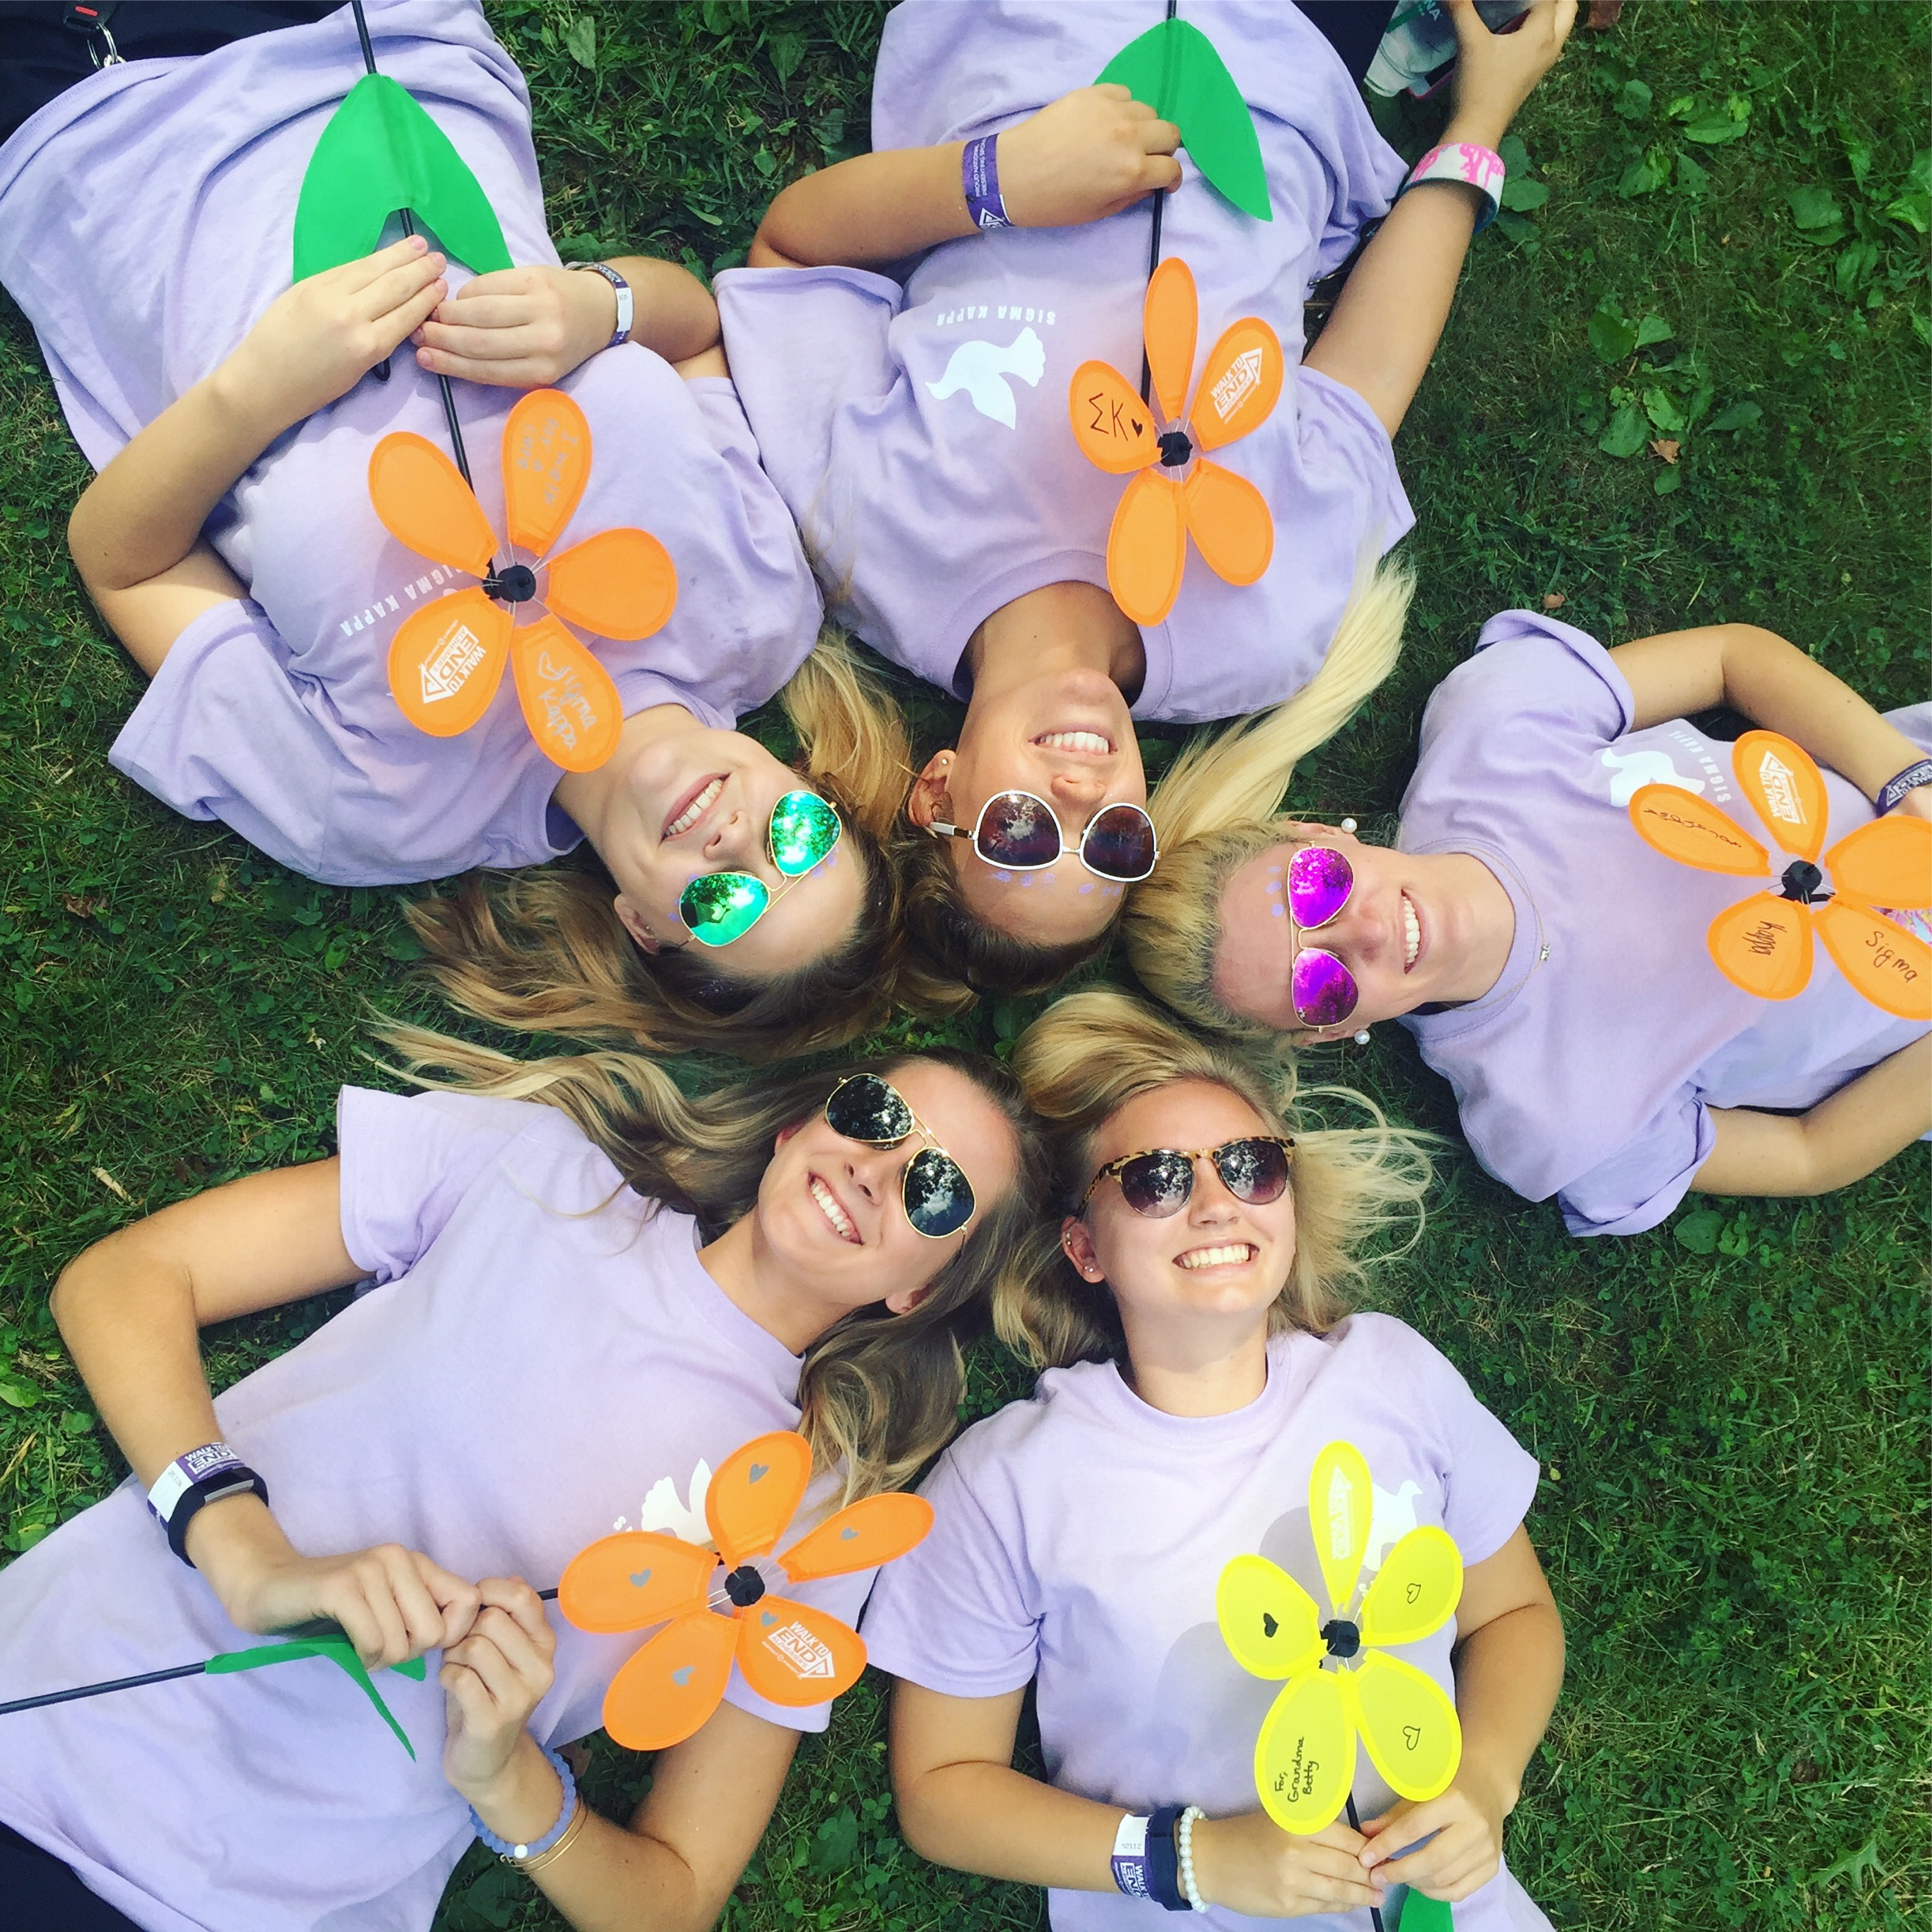 Walk to End Alzheimer's - Fall 2016